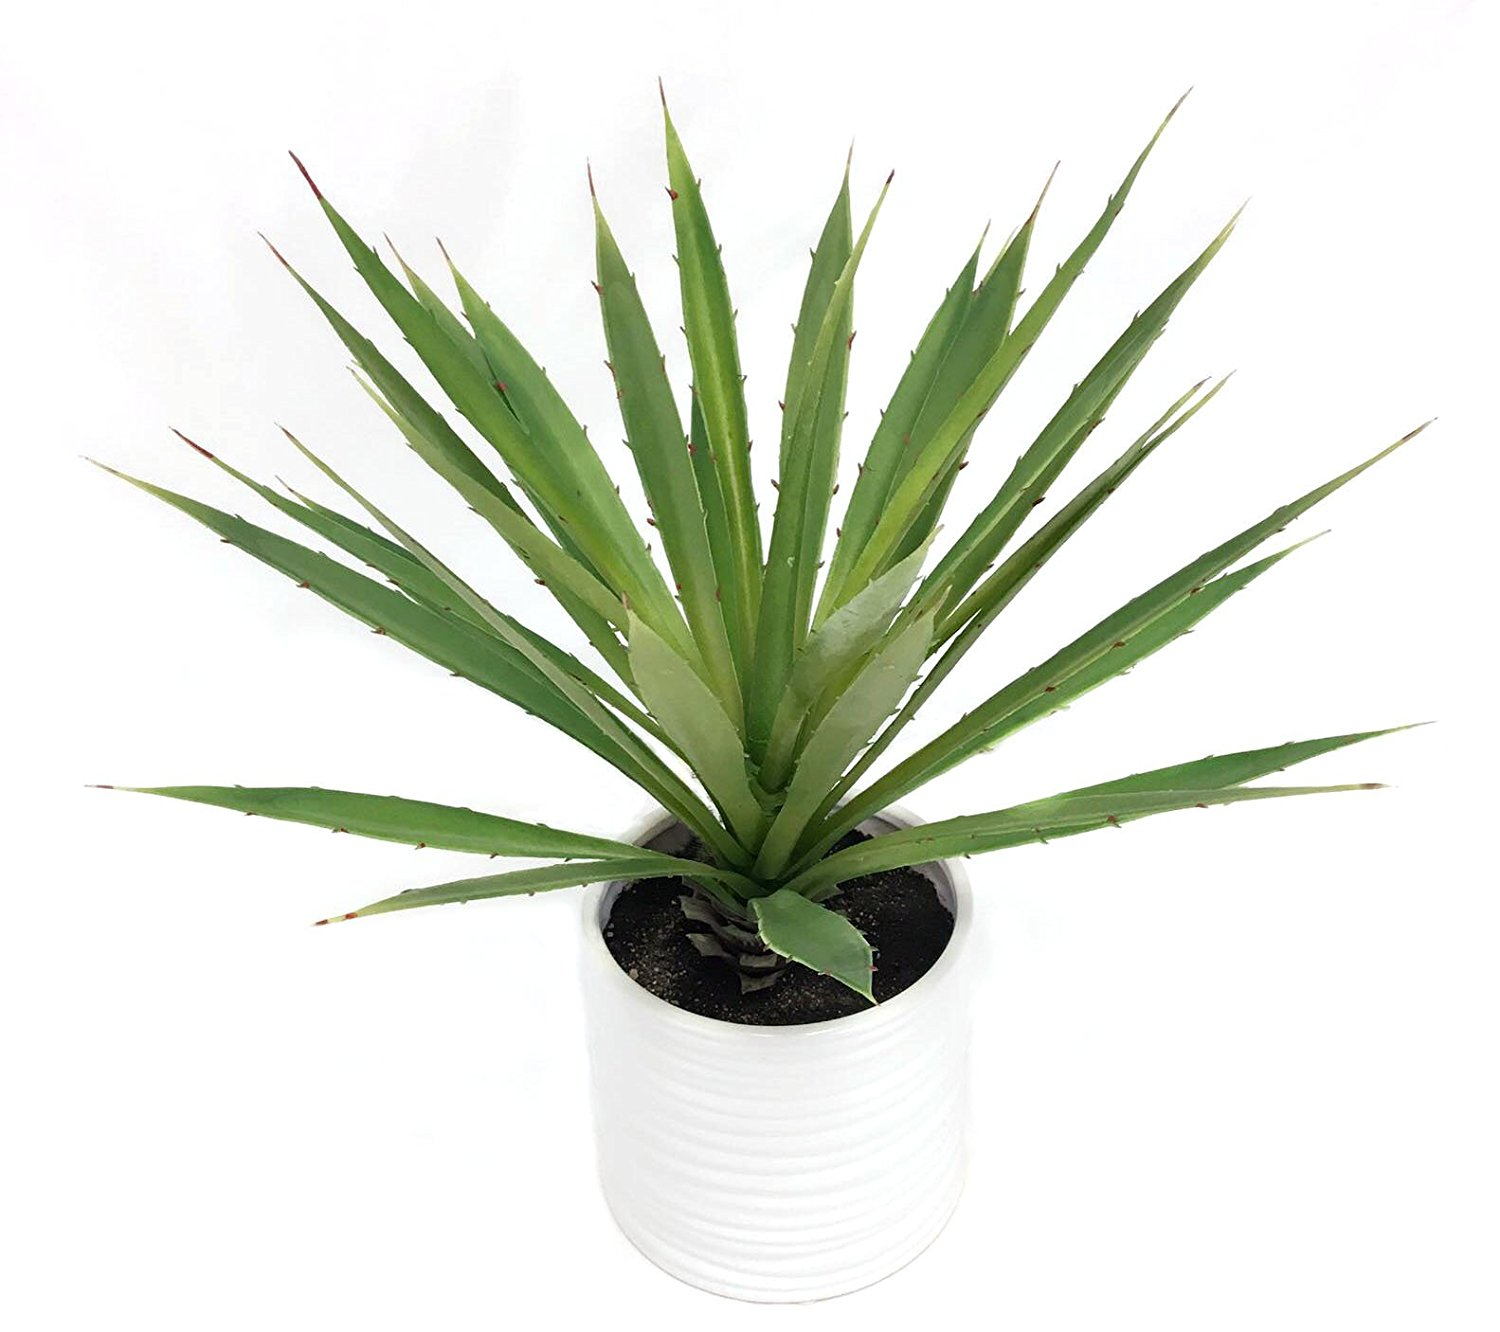 19 Inch Succulent Yucca Plant With Decorative Modern White Pot